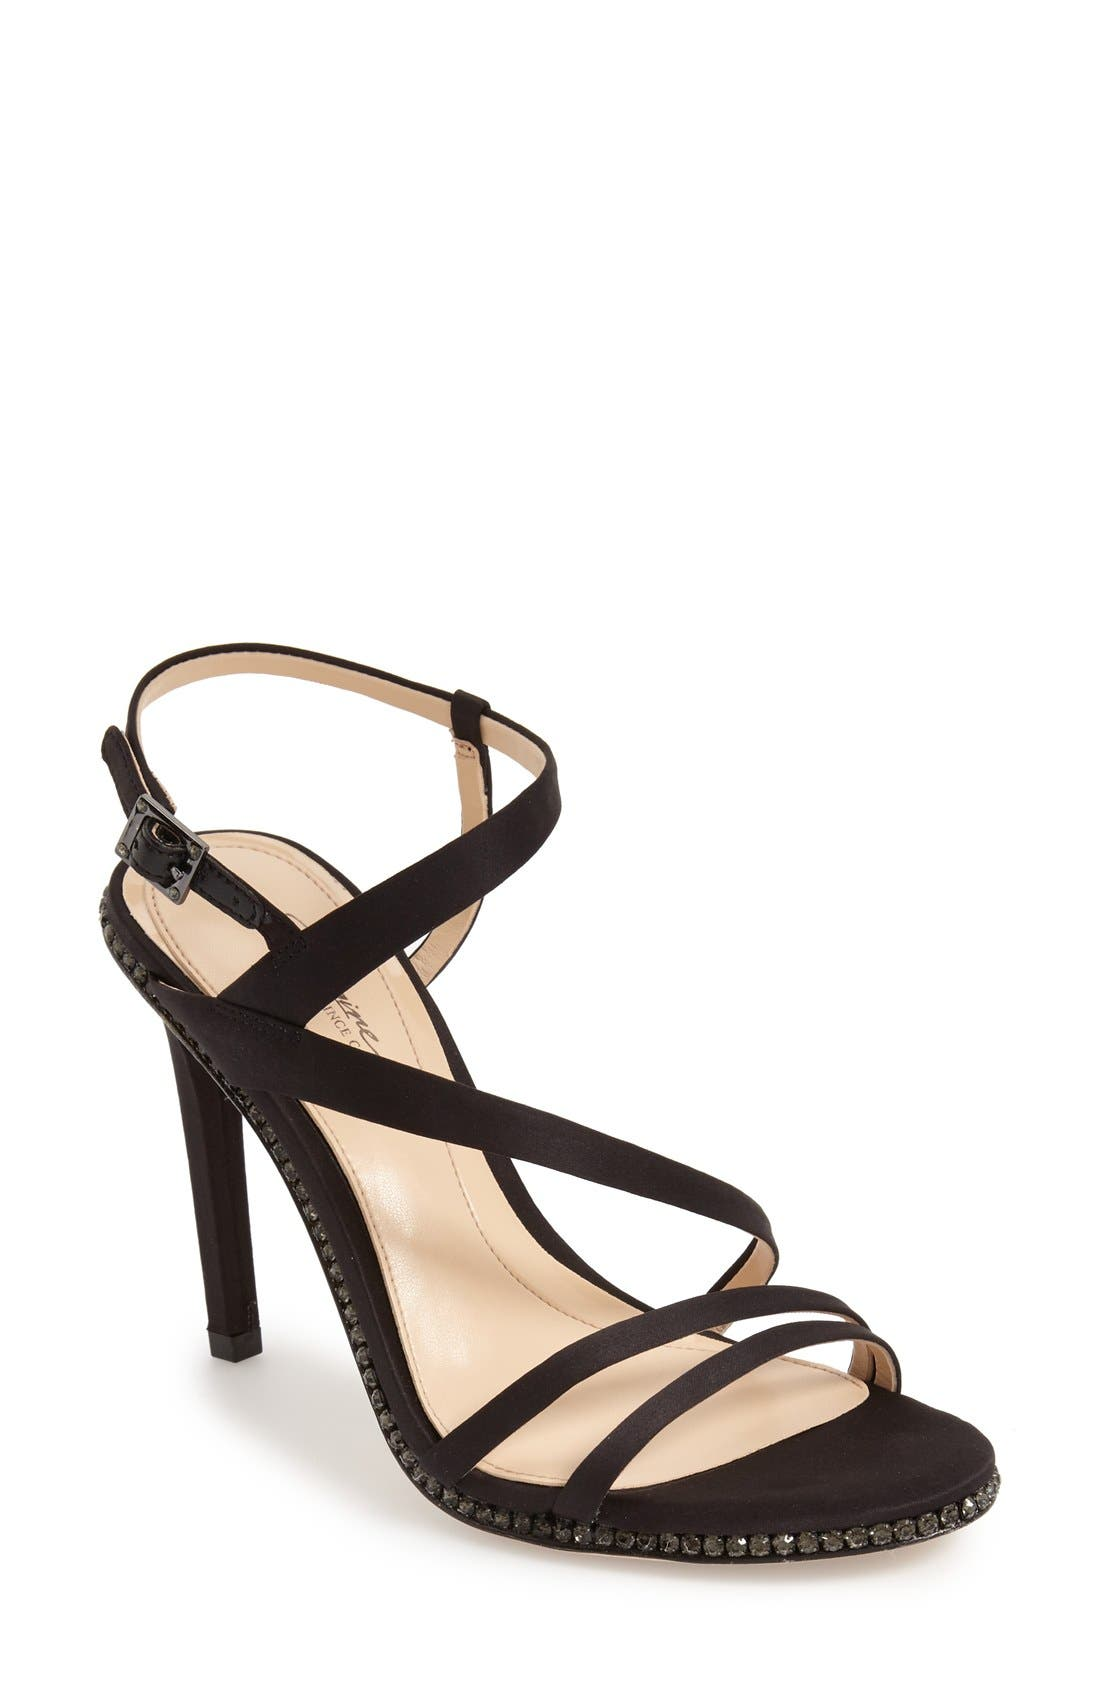 Alternate Image 1 Selected - Imagine Vince Camuto 'Gian' Strappy Sandal (Women)